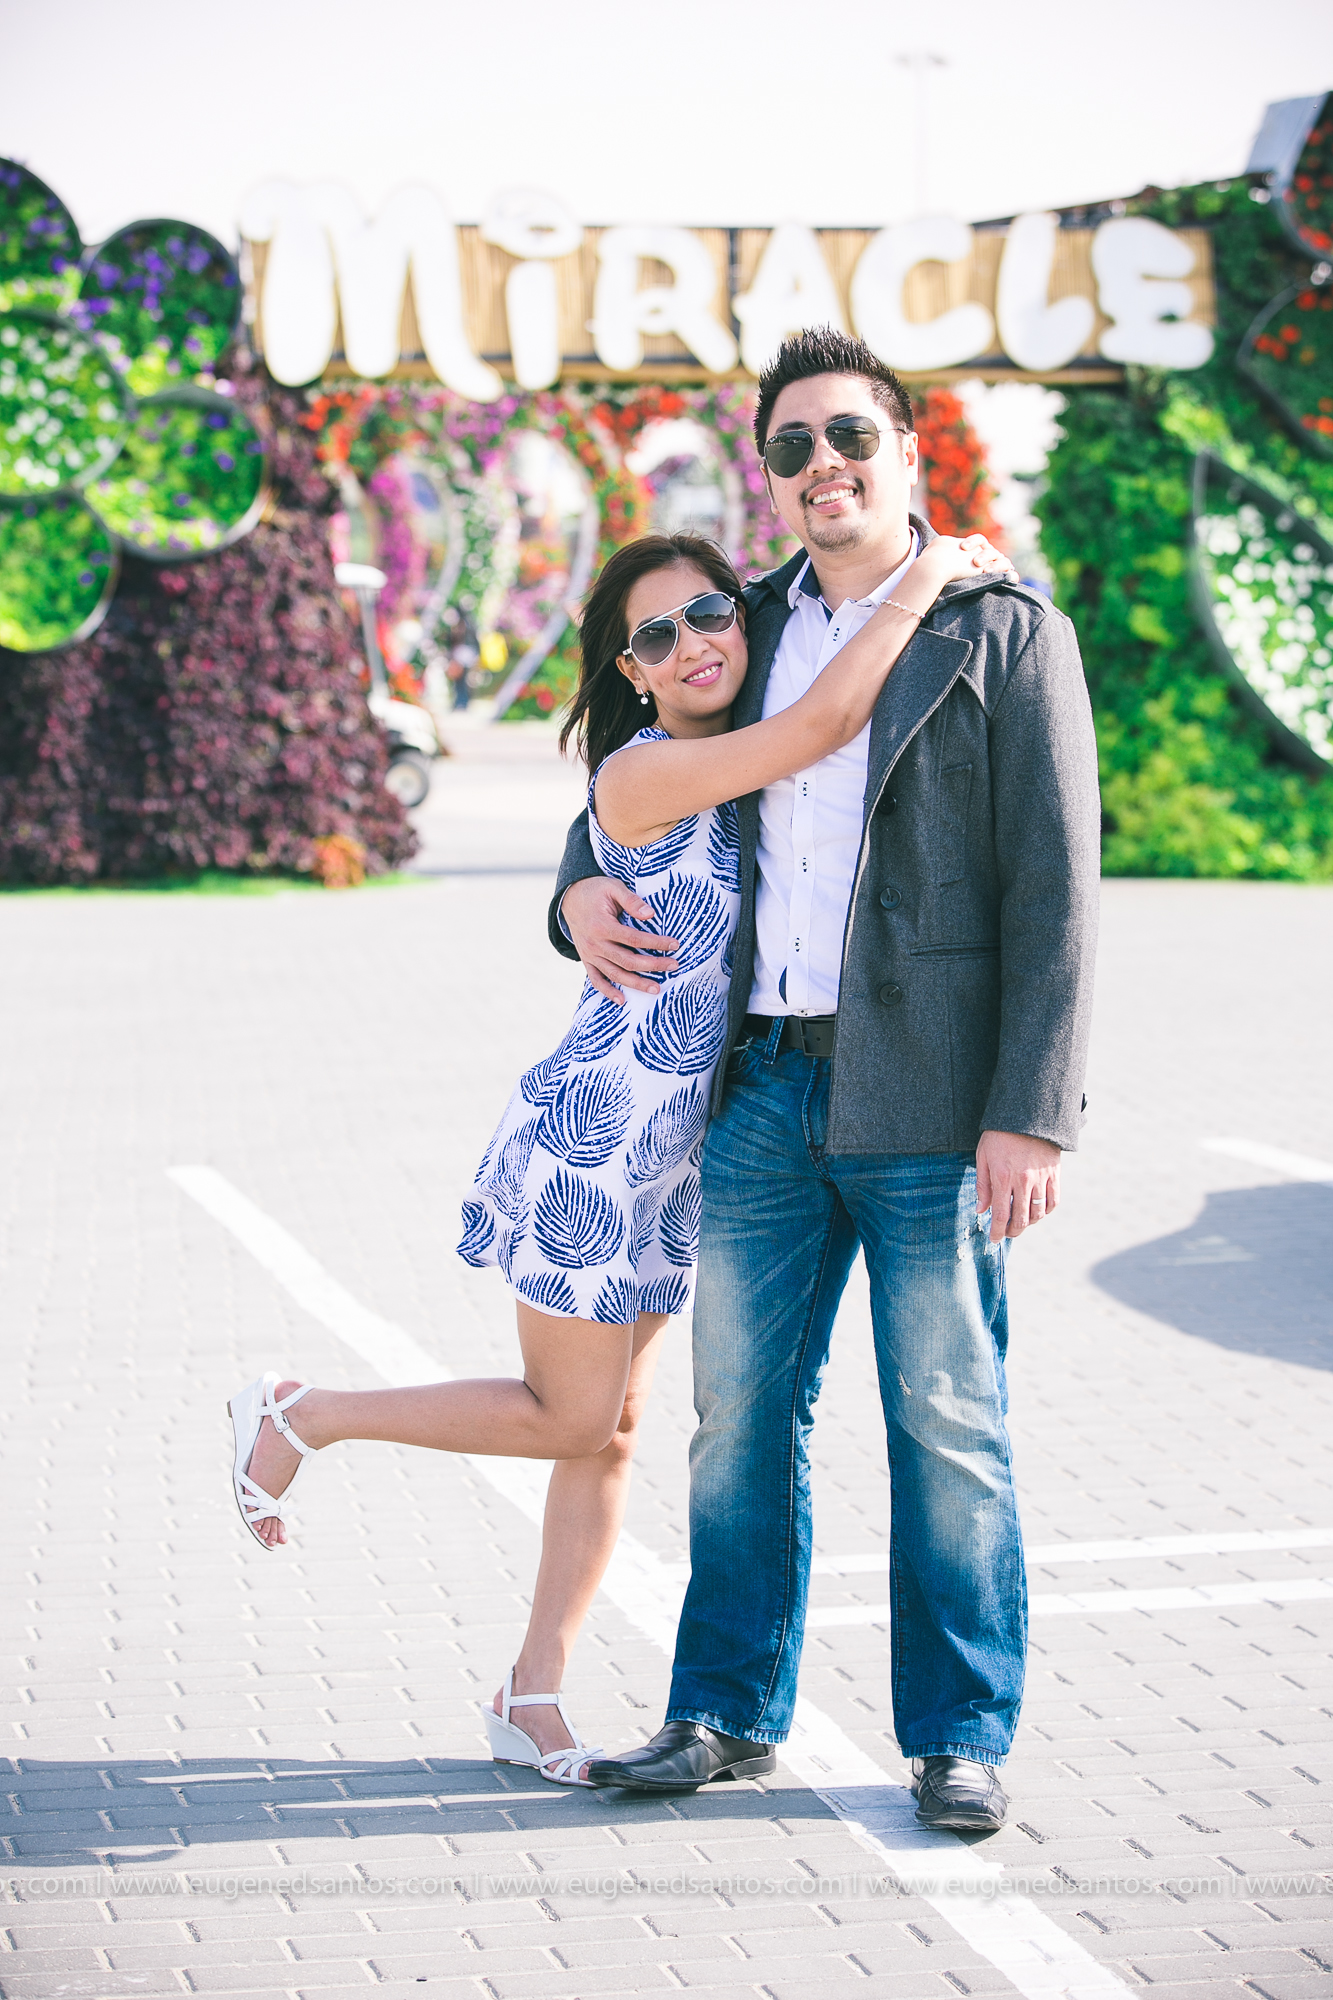 ES - Dubai Wedding Photography DR-39.jpg